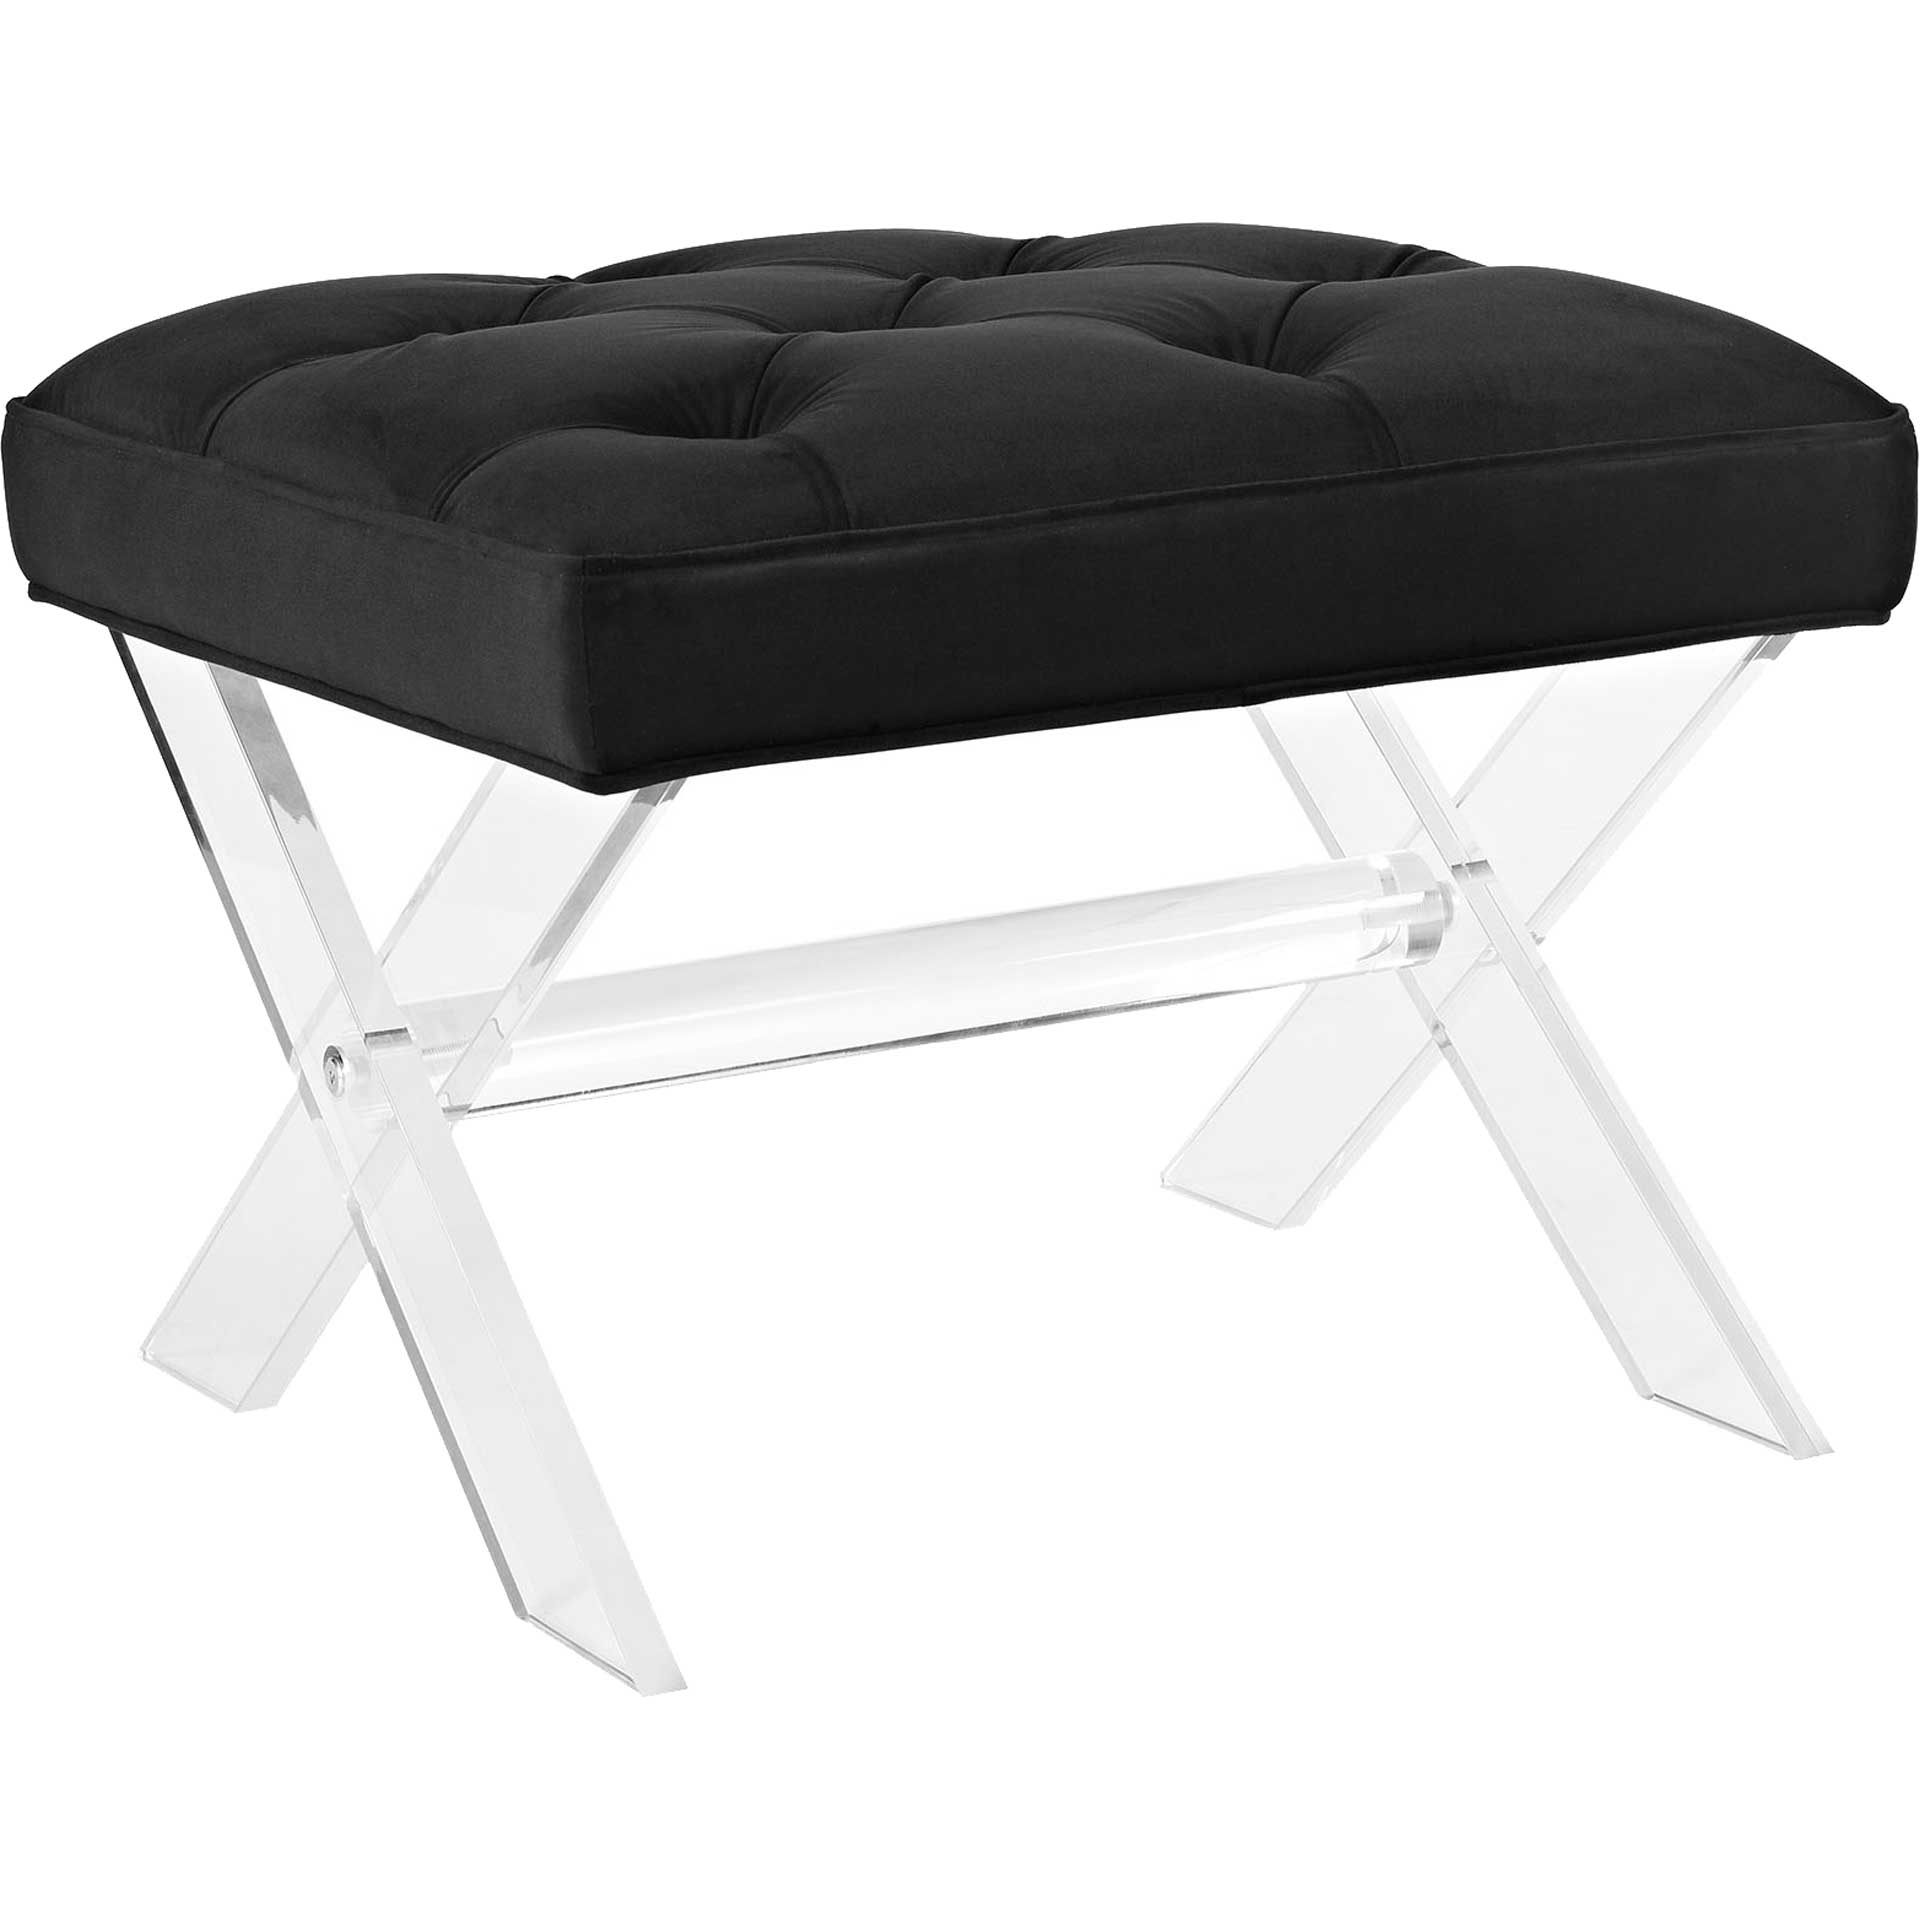 Sloan Bench Black